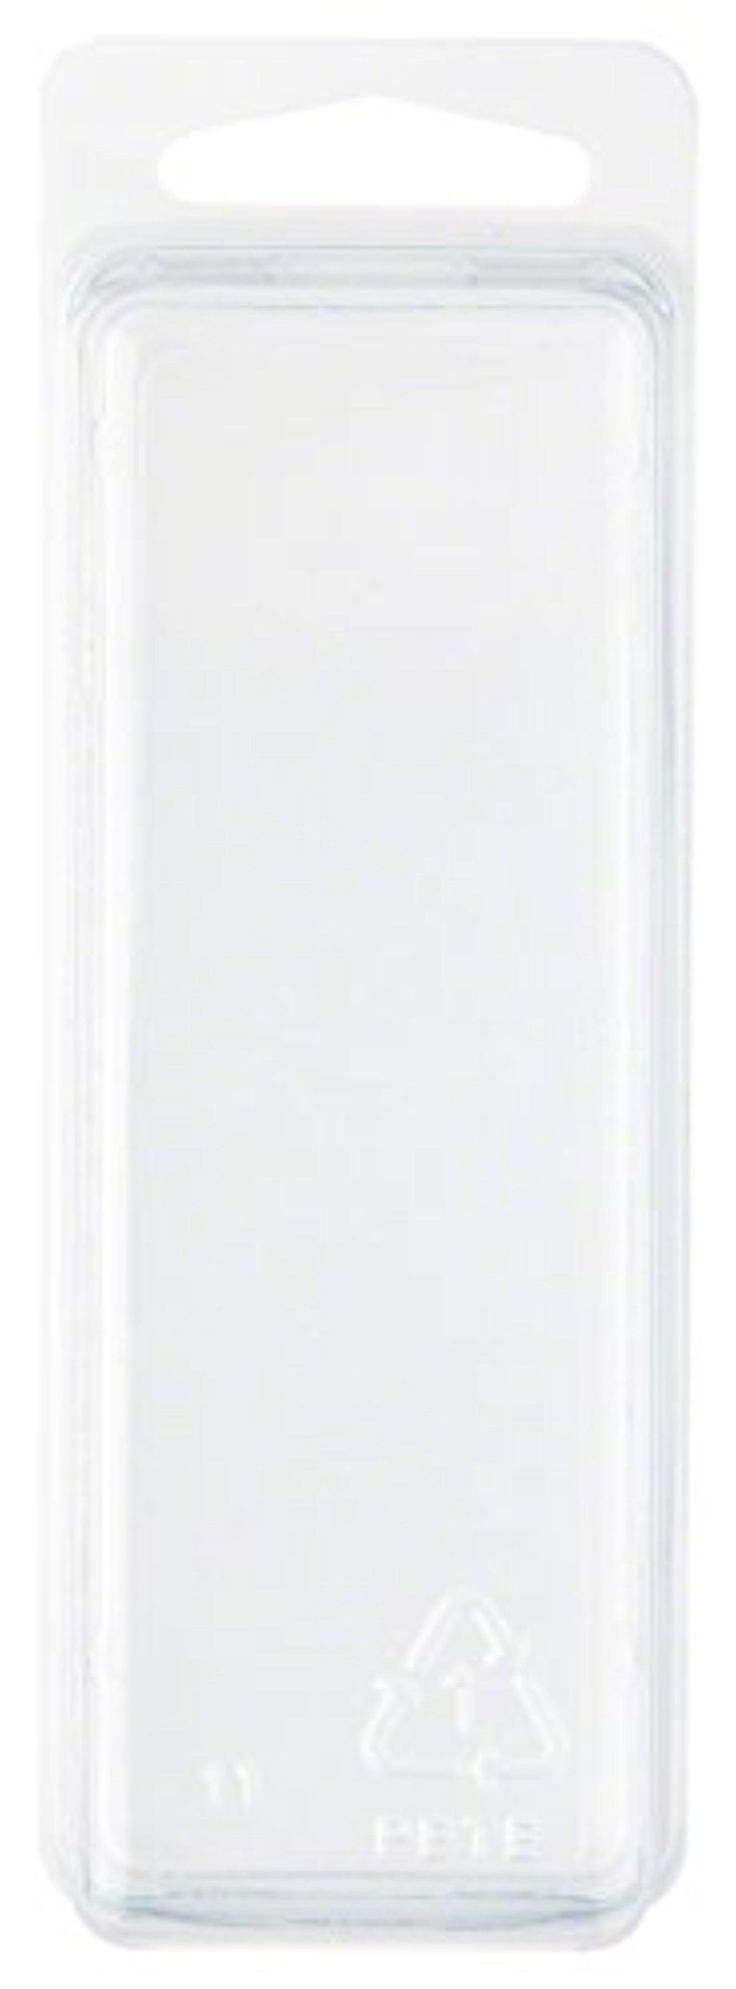 "Clear Plastic Clamshell Package / Storage Container, 4.19"" H x 1.5"" W x 1.25"" D - Brought to you by Avarsha.com"